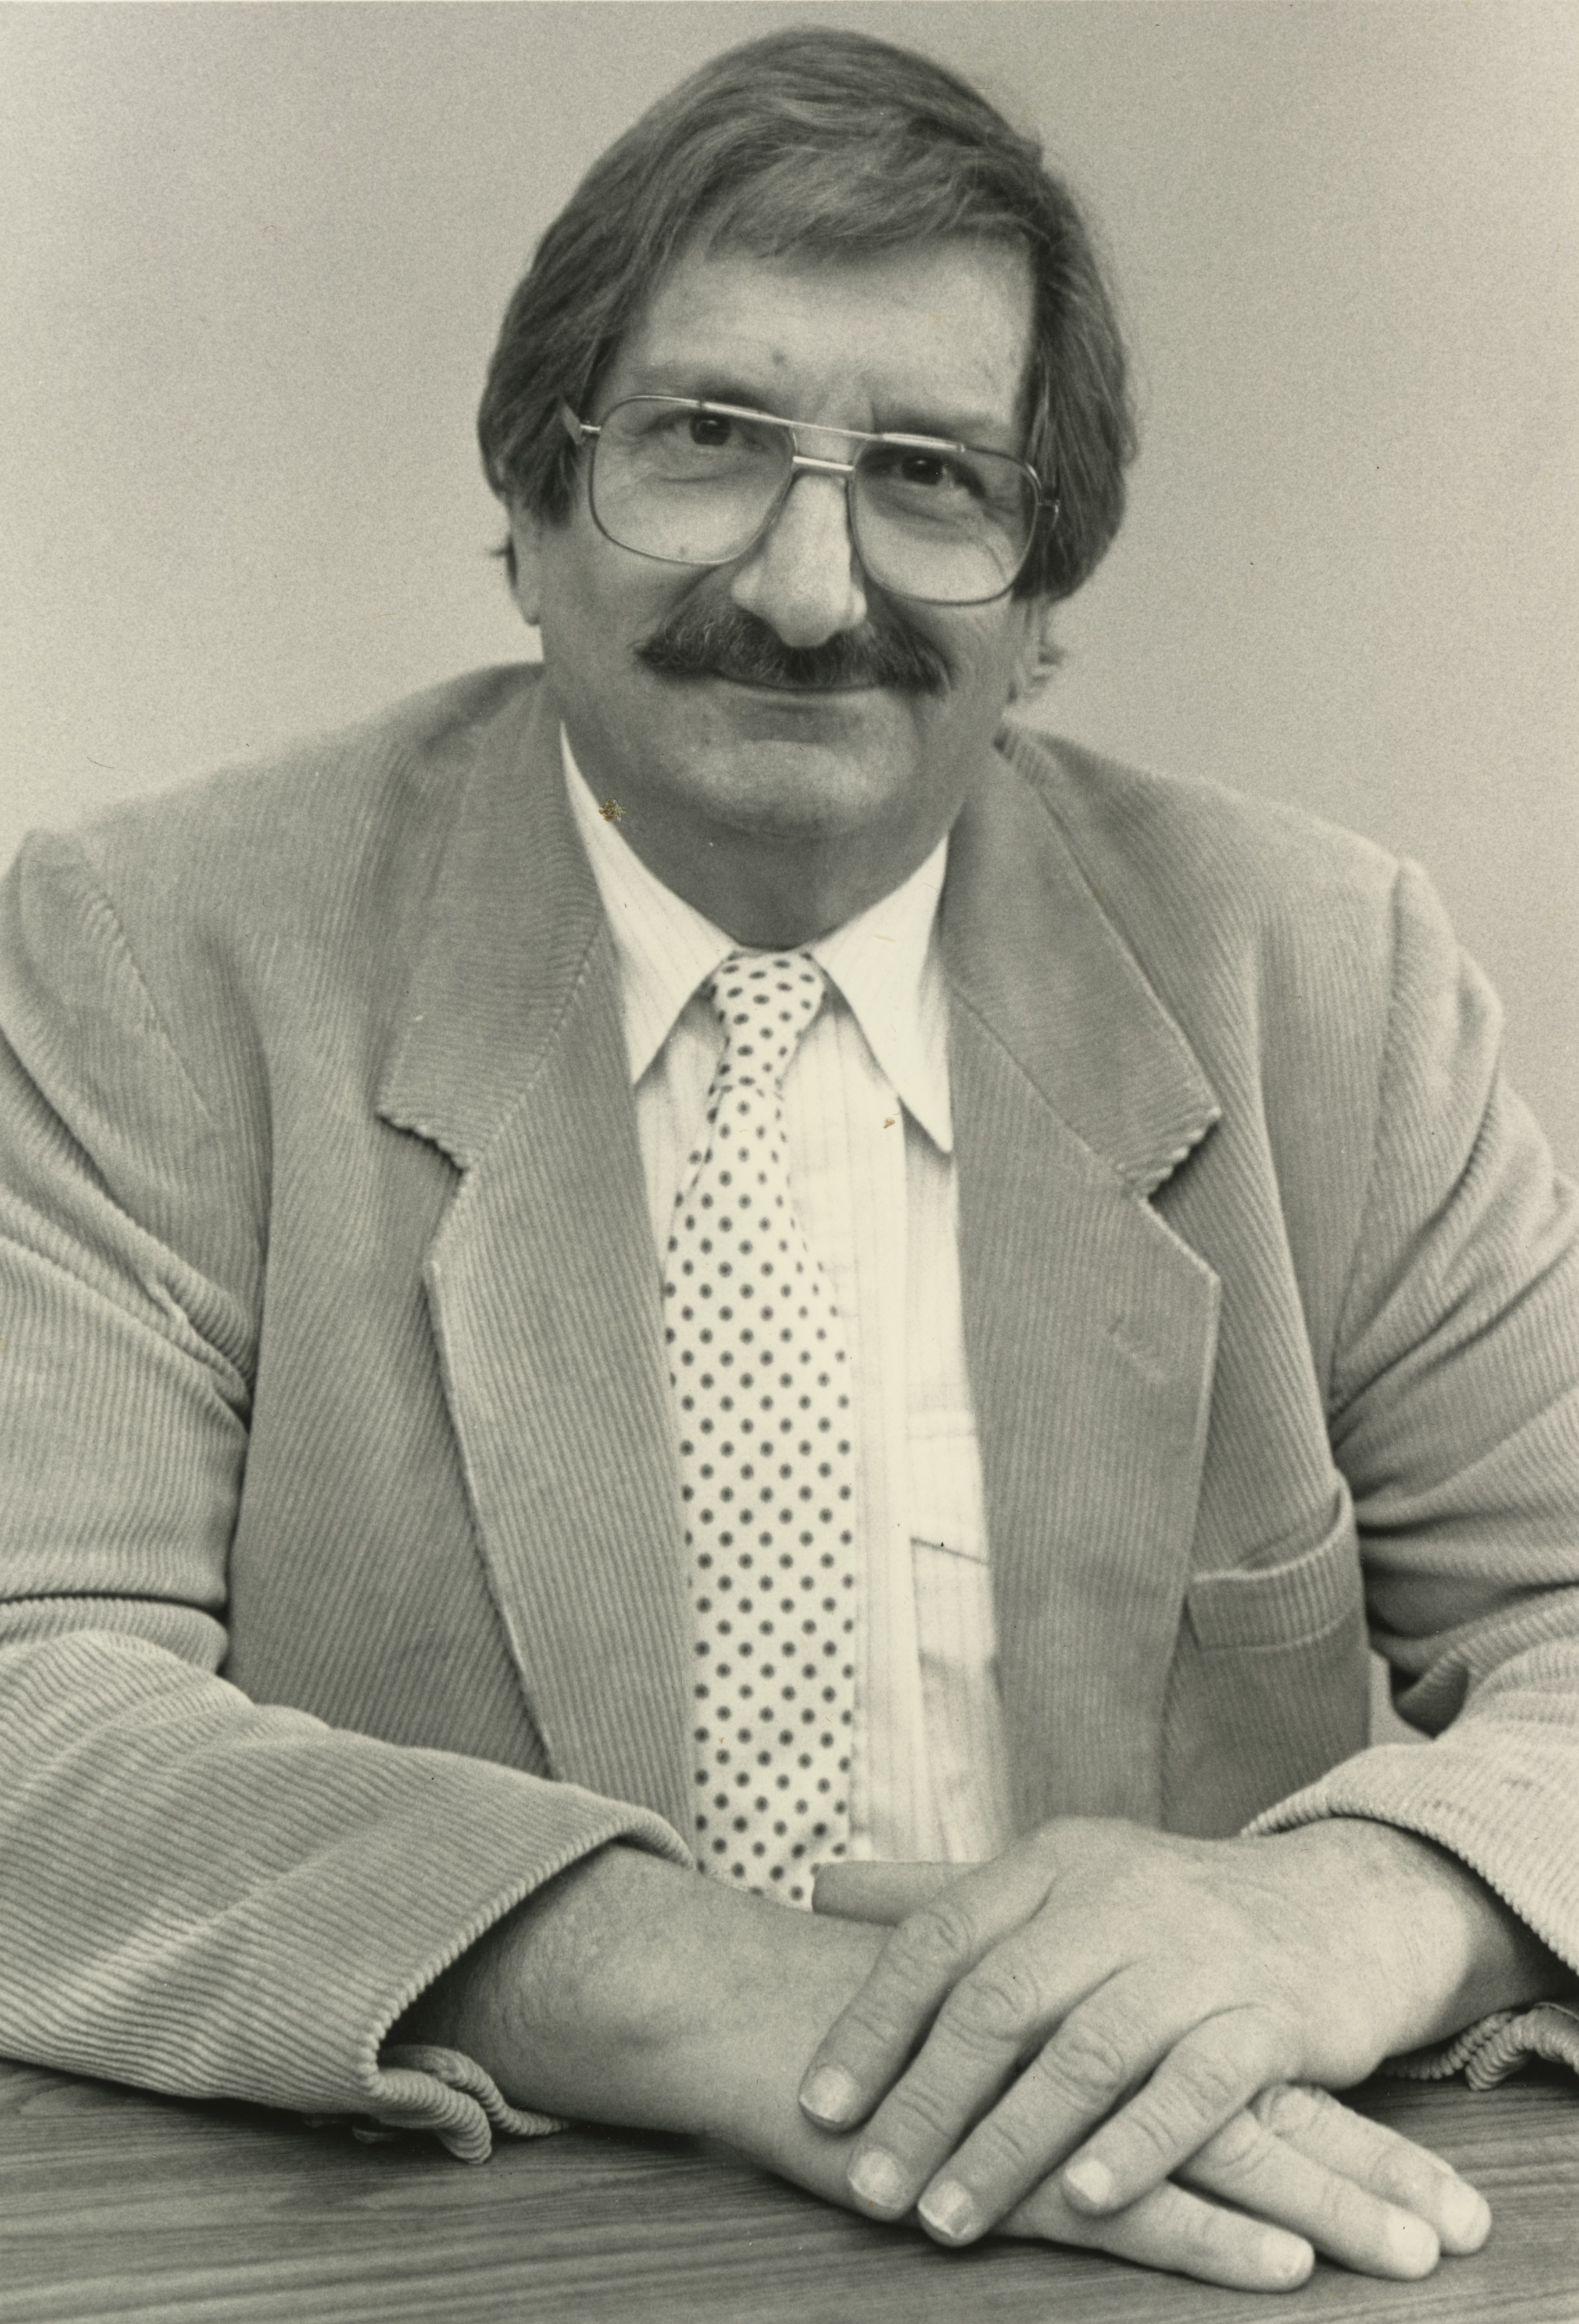 Portrait of Dr. Russell F. Smith, Medical Director of Greenbrook Recovery Center, 1988 image